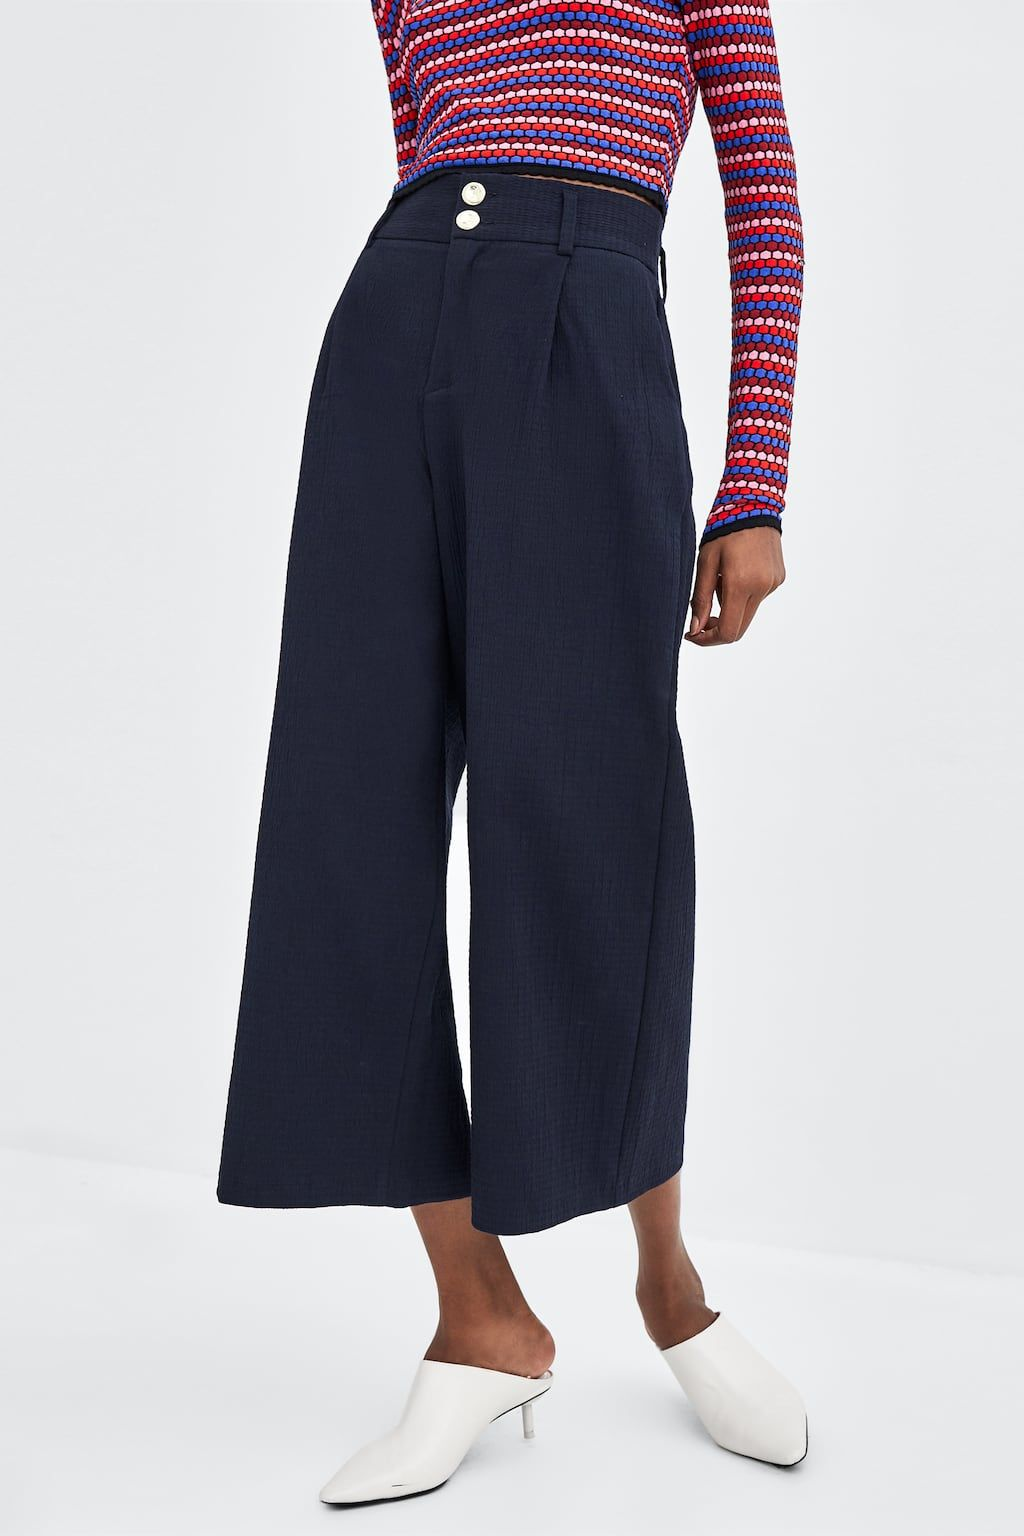 8e053912 Image 3 of WIDE LEG ANKLE PANTS from Zara | what to wear | Palazzo ...